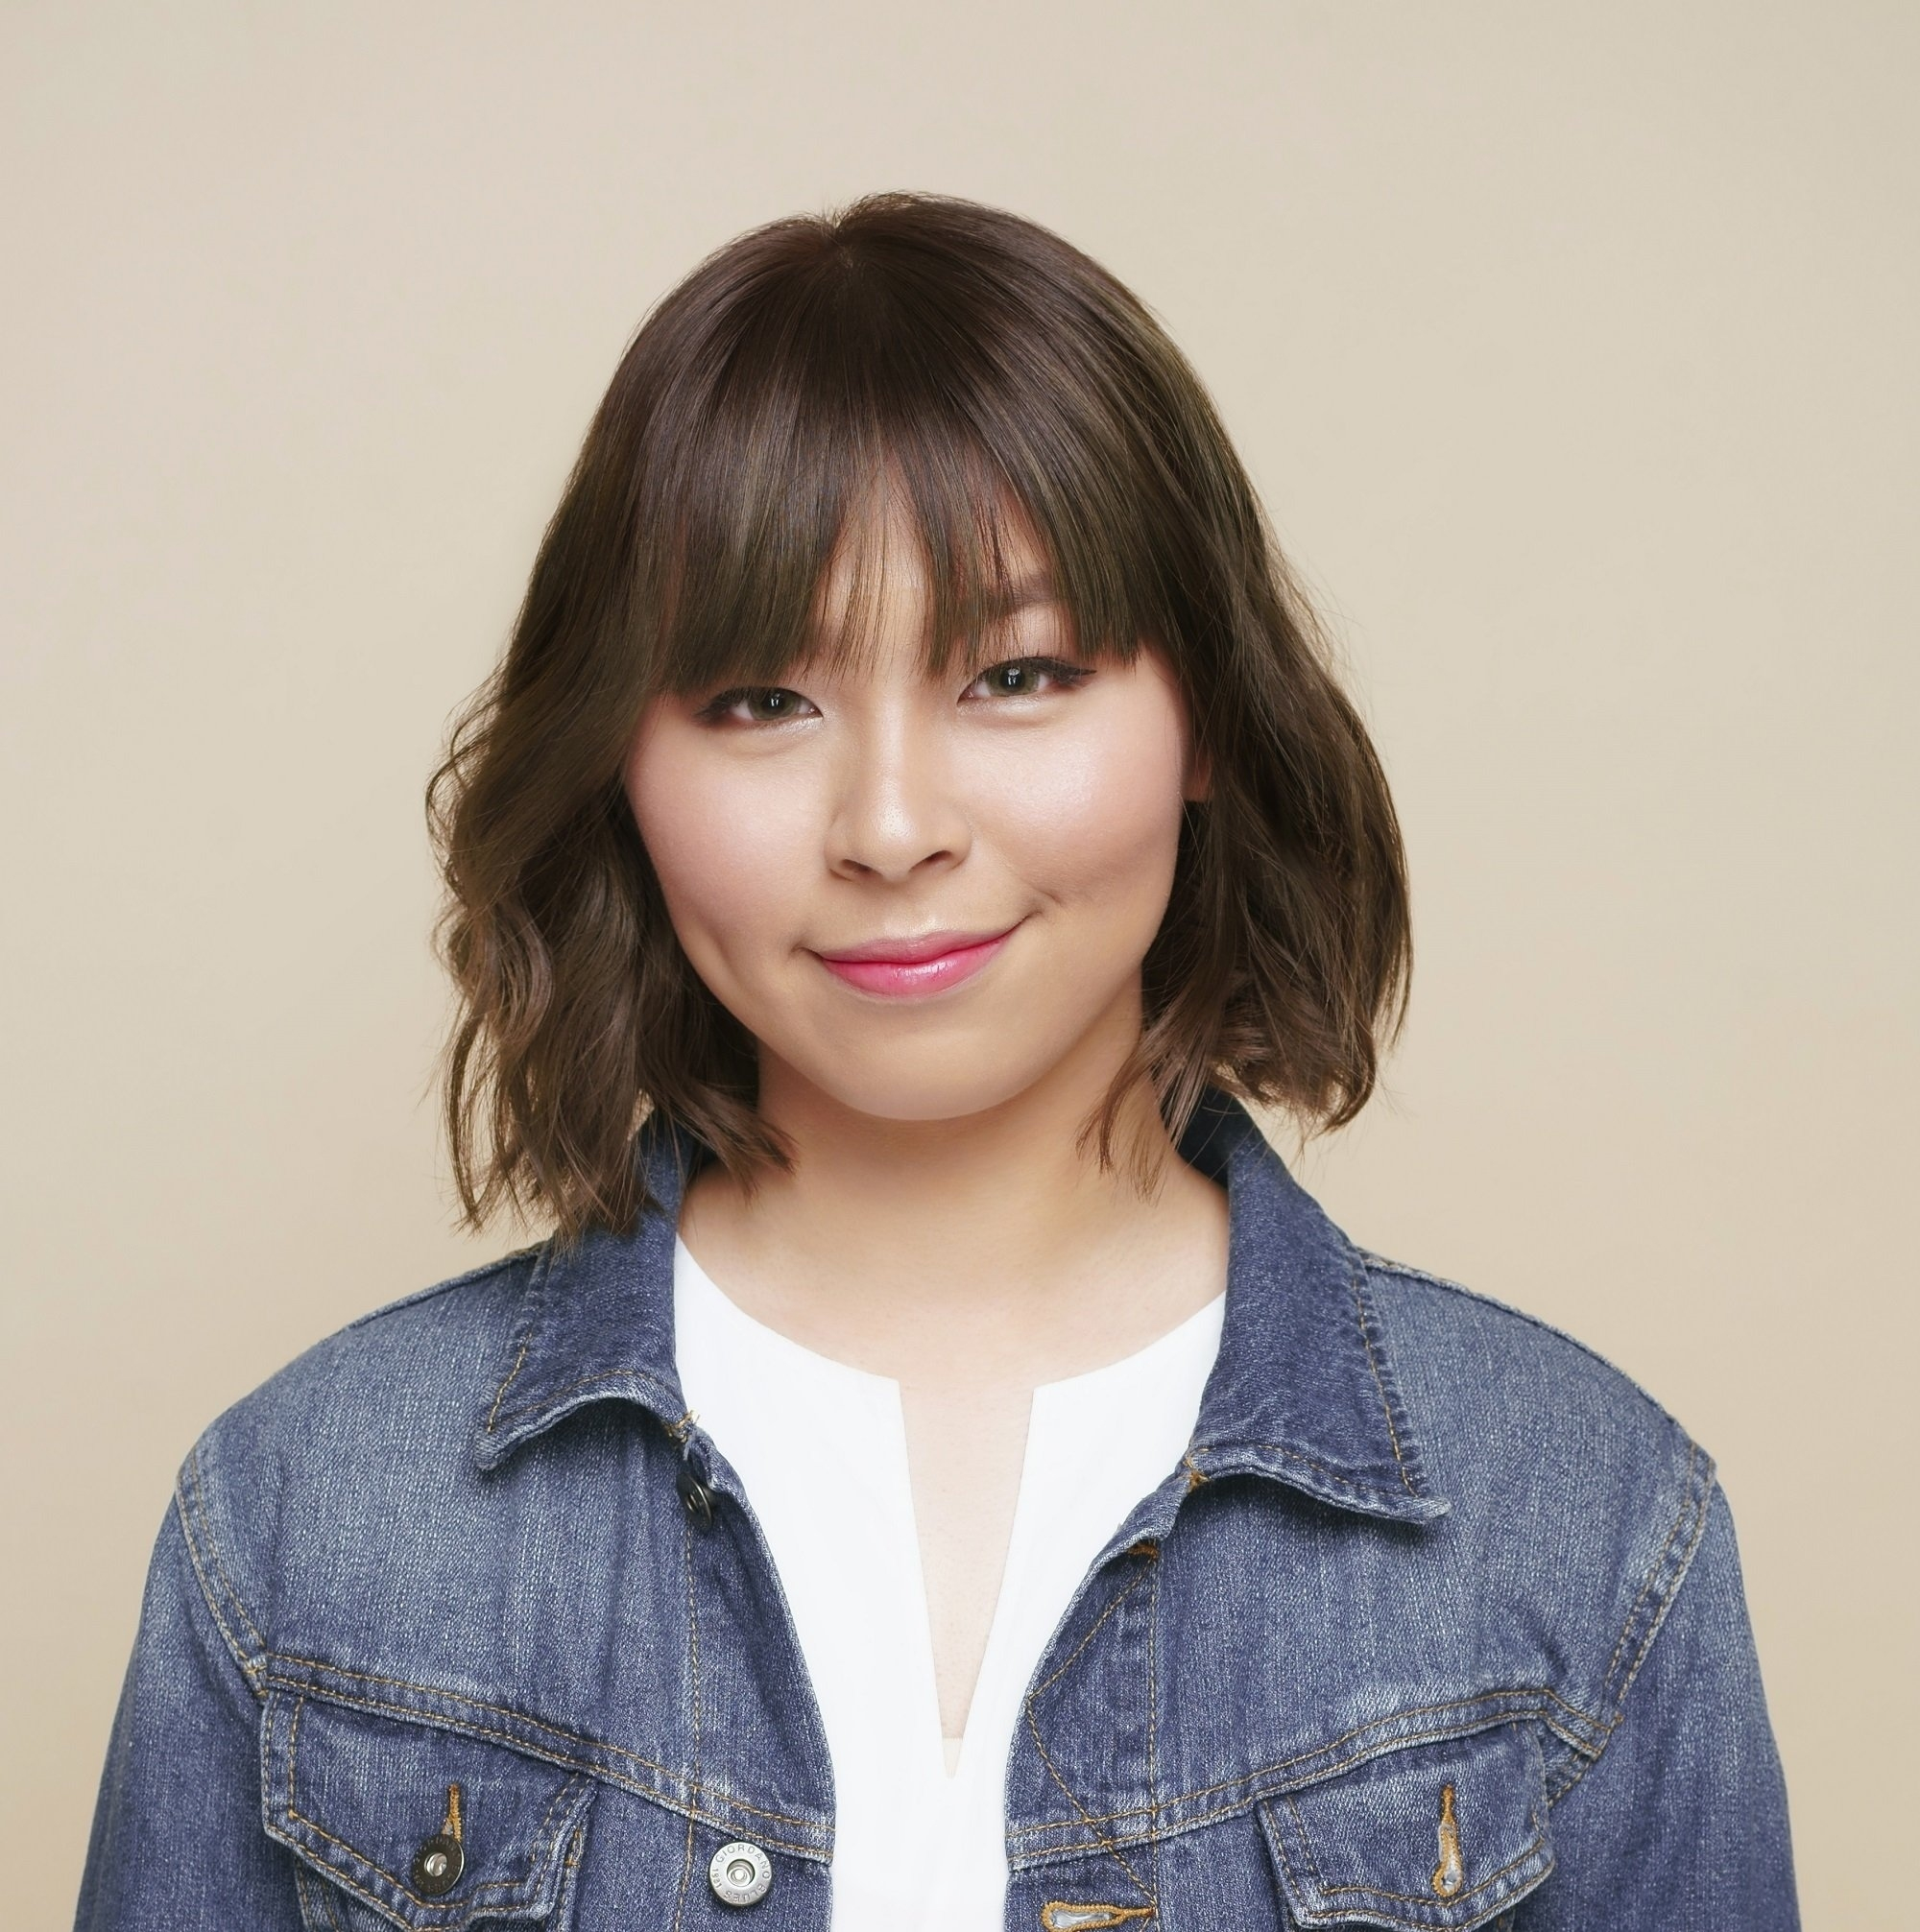 Short Hair For Round Face: Chic Ideas You Need To Try throughout Superb Korean Hairstyle For Round Face Girl